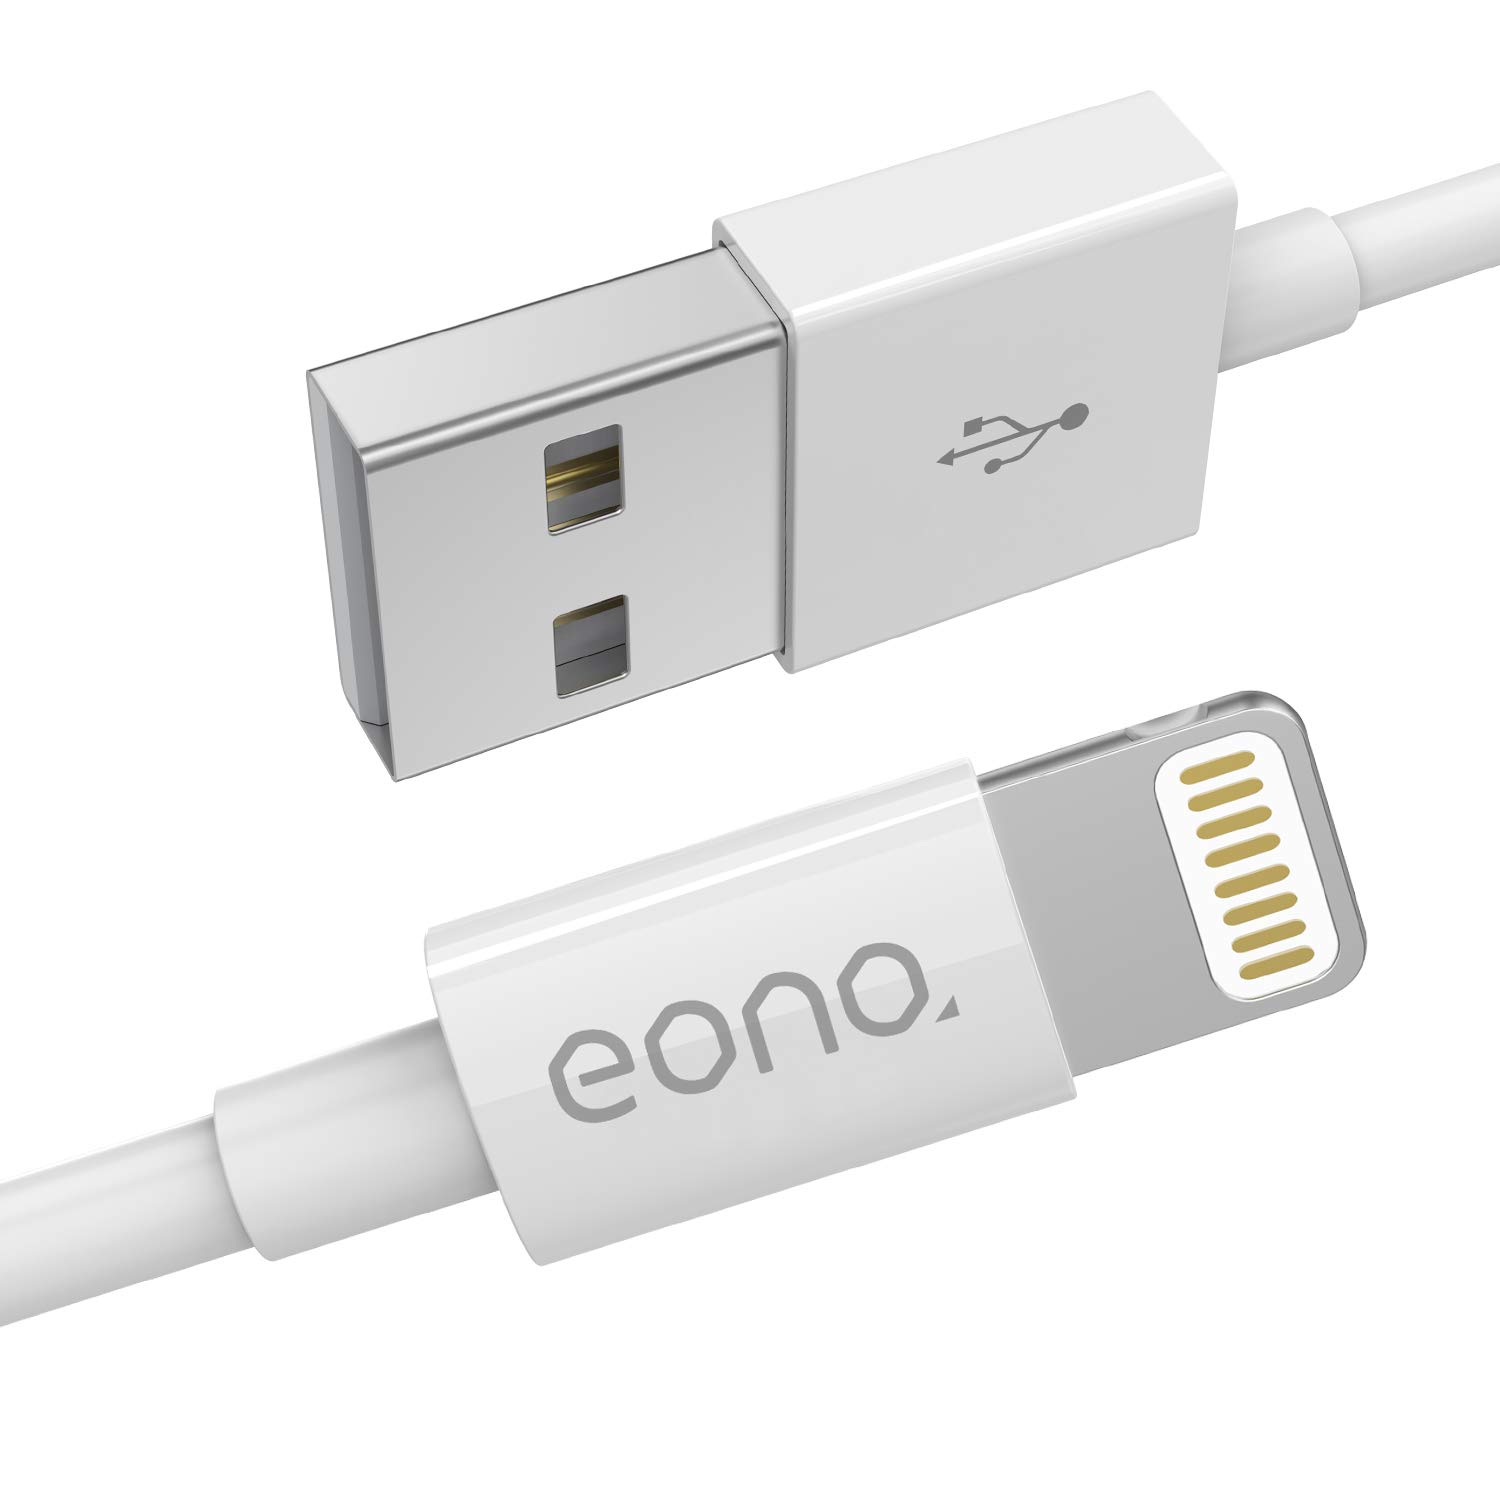 IPHONE LIGHTNING CHARGEUR CHARGER BRAIDED CABLE 1M IPHONE 5 6 7 8 X iPAD WHITE